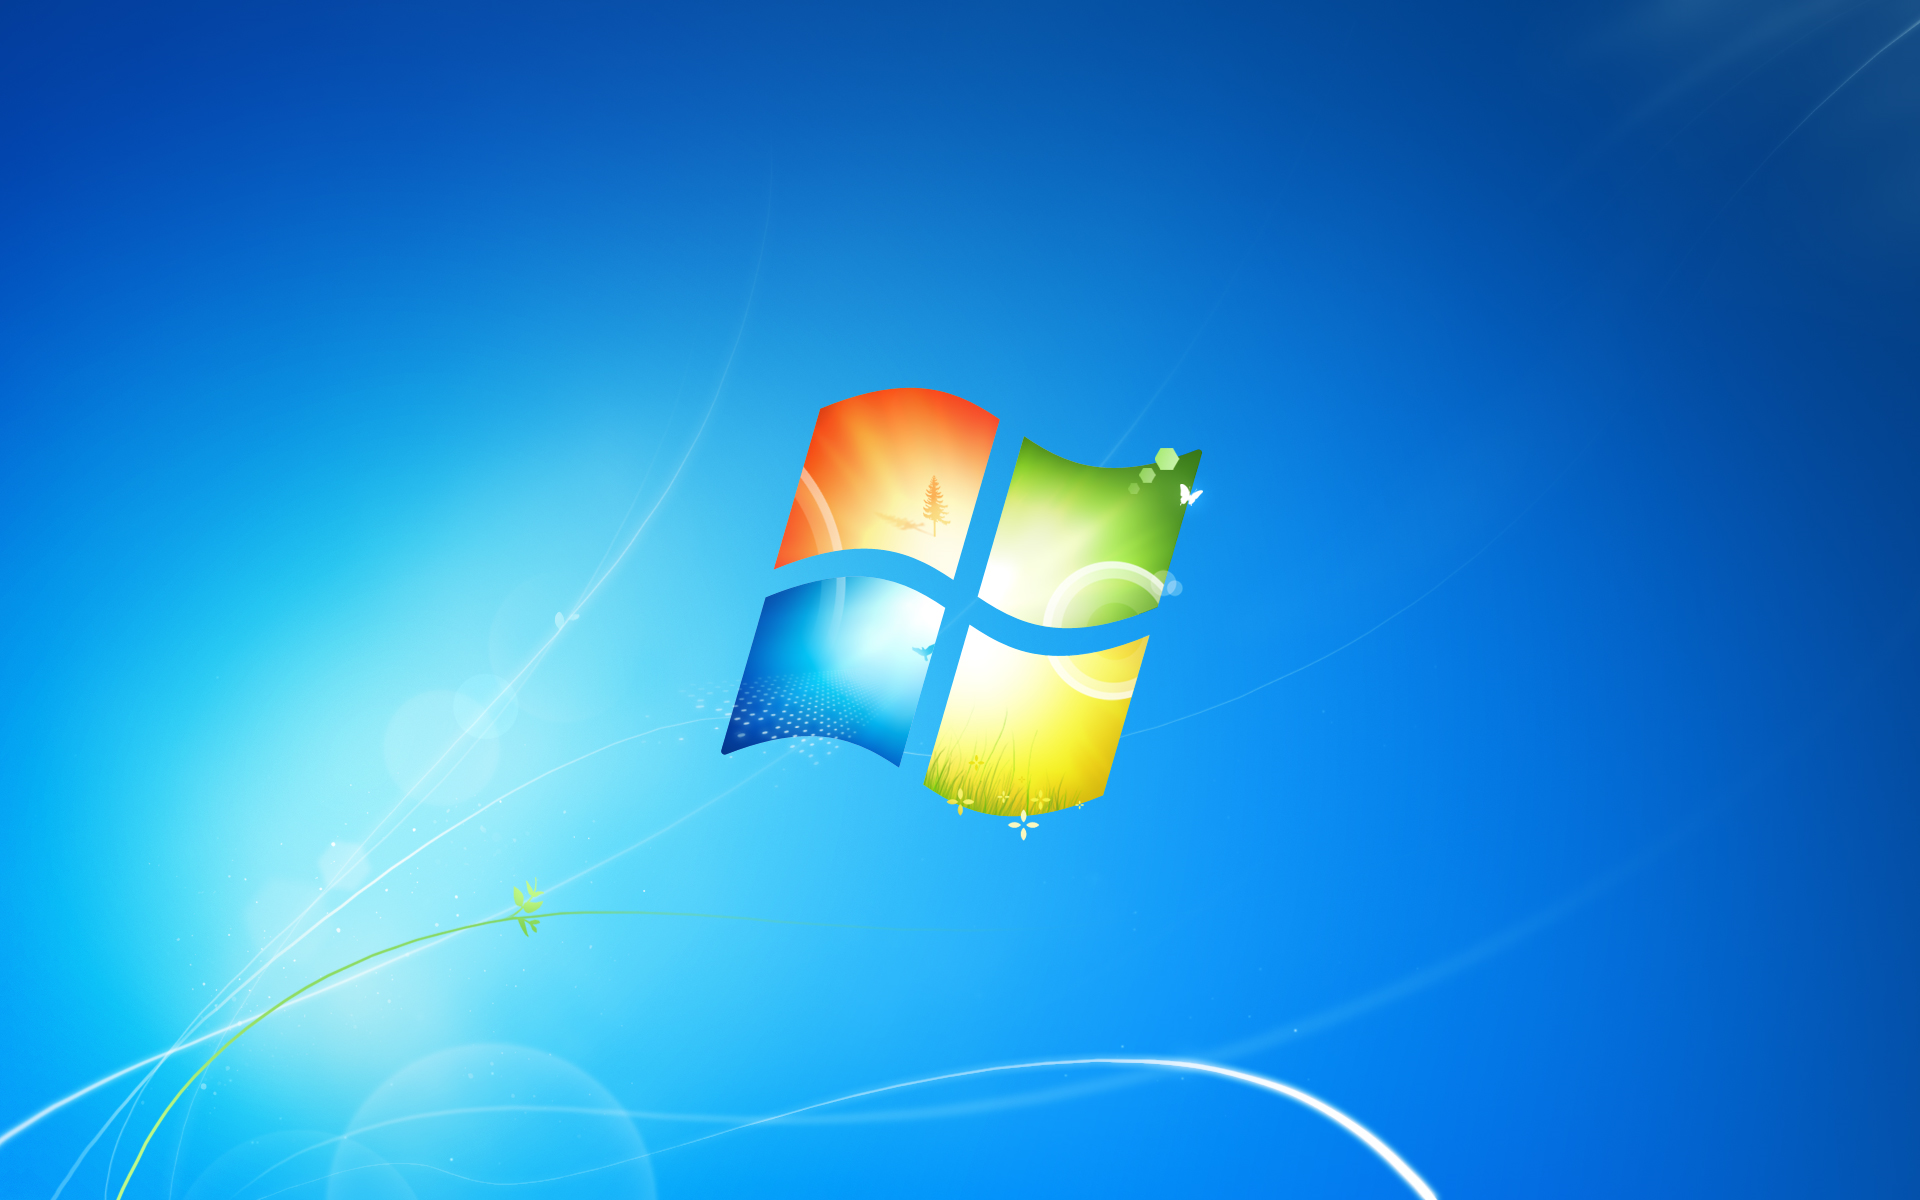 Windows 7 Default Wallpaper